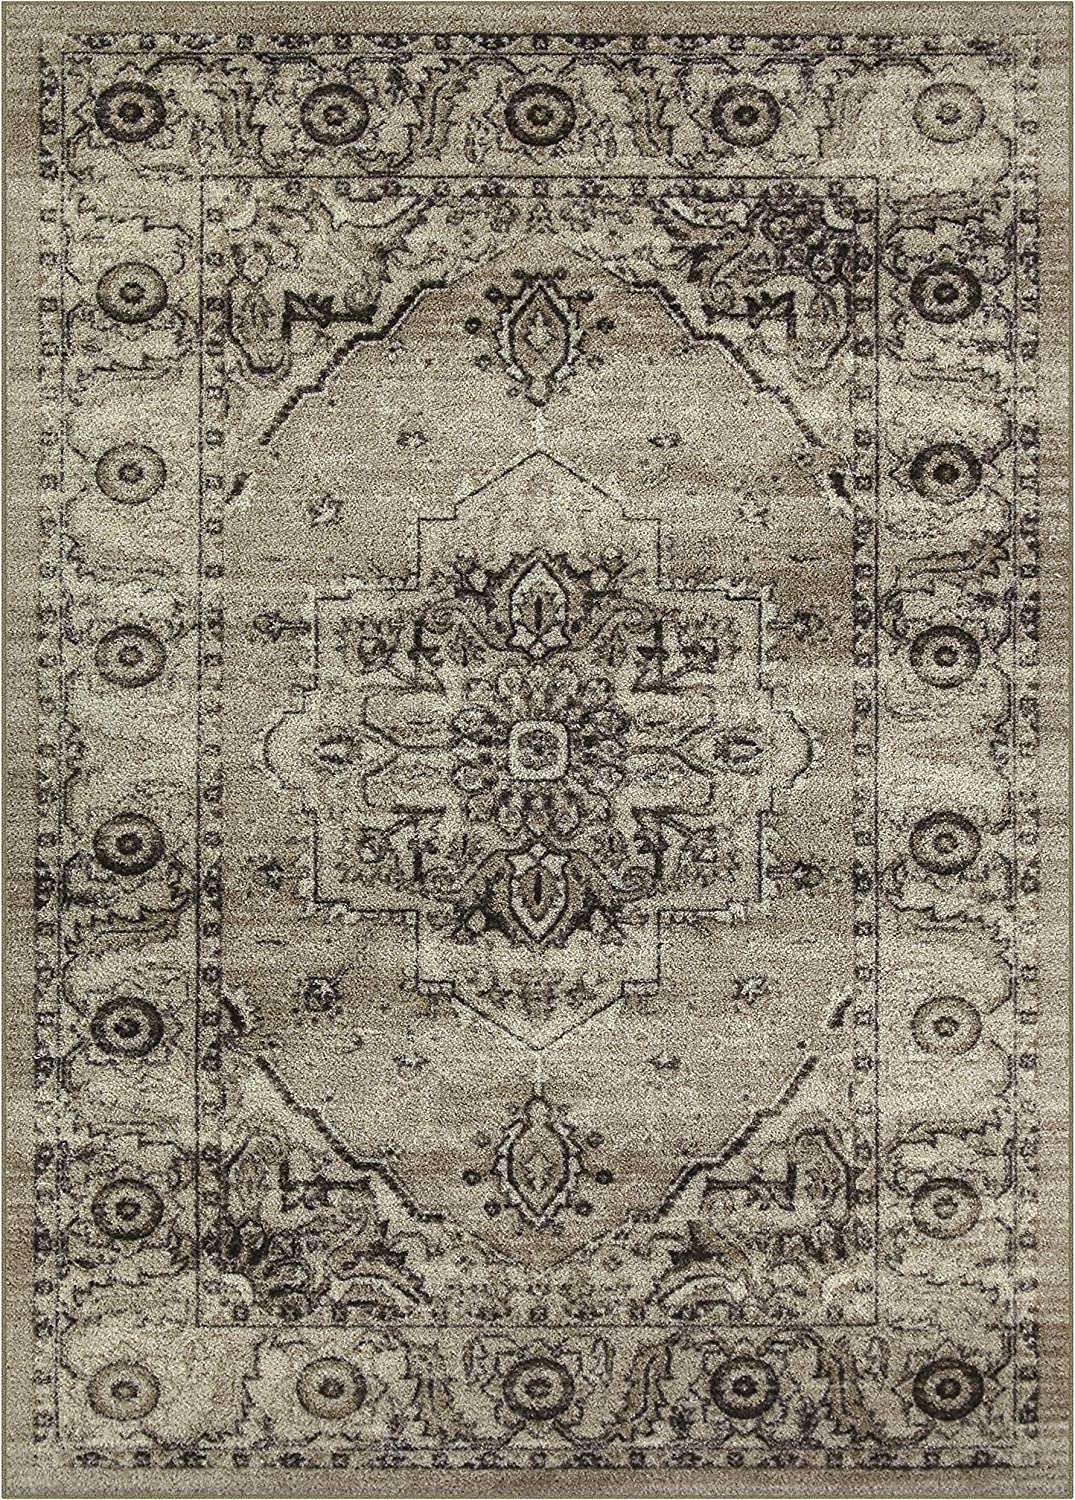 Maples Rugs Distressed Lexington Area Rugs Carpet for Living Room & Bedroom [Made in USA], 5 x 7, Neutral